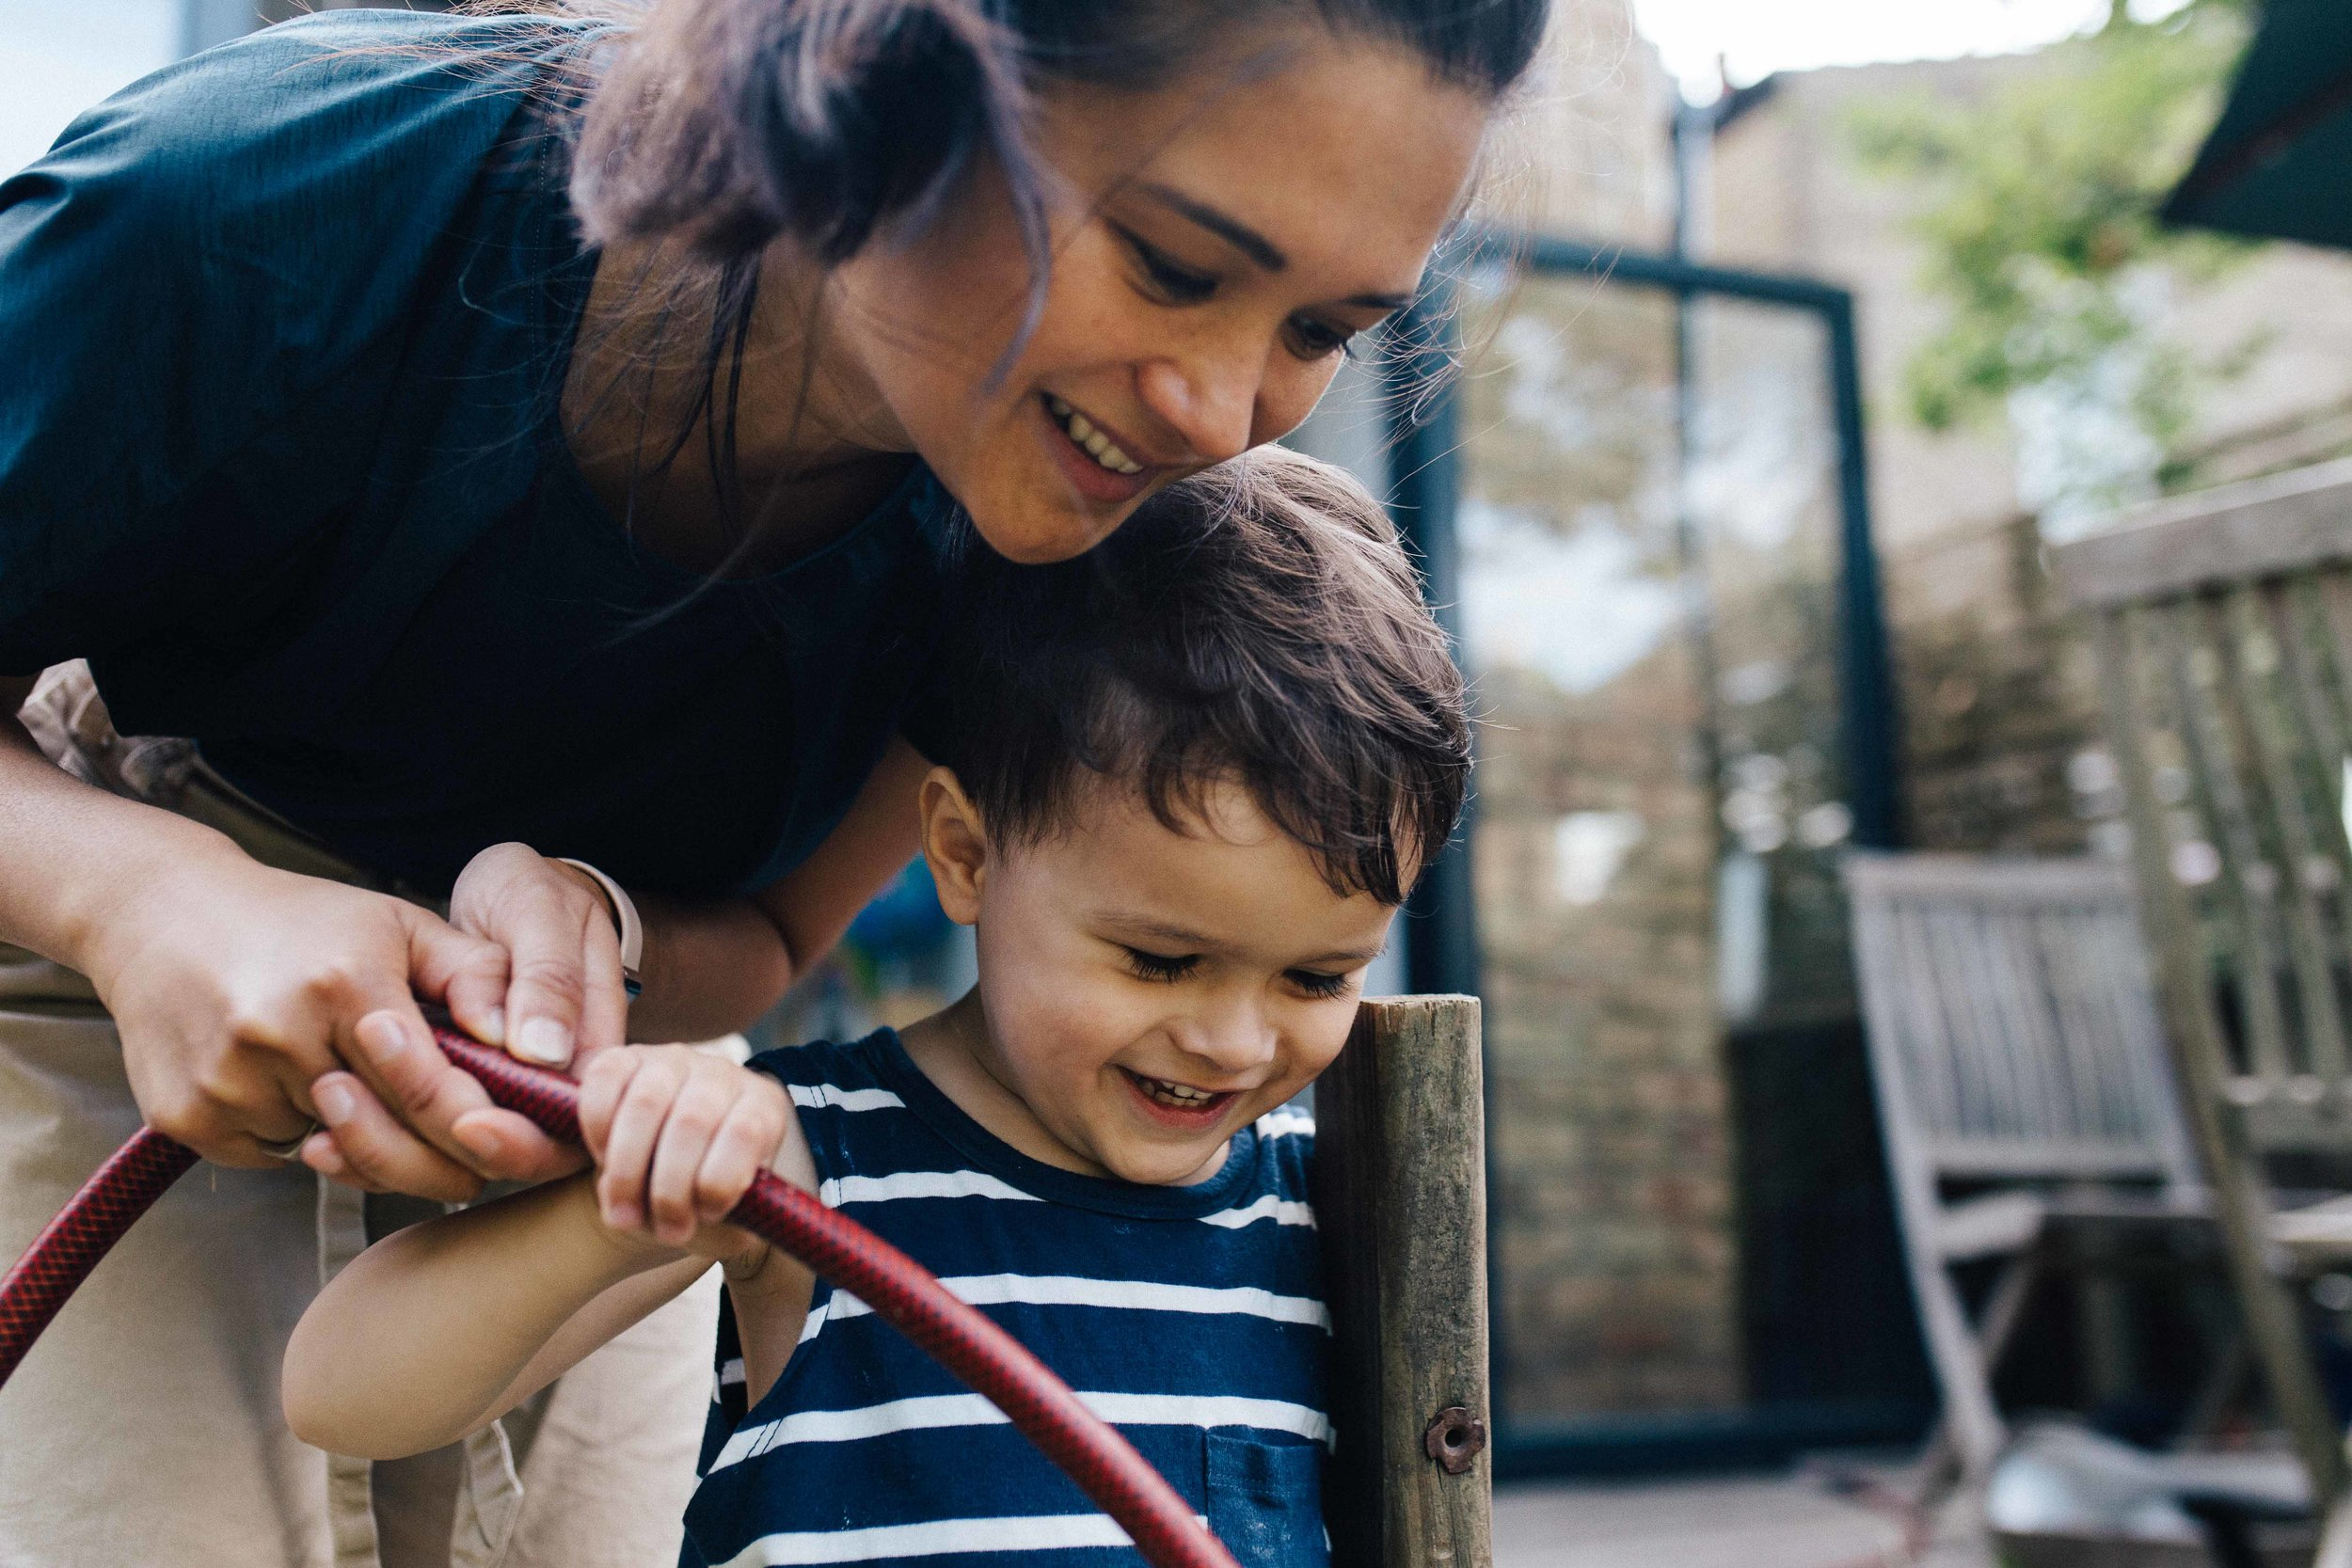 Family photographer in South London - mother and son in their East Dulwich garden